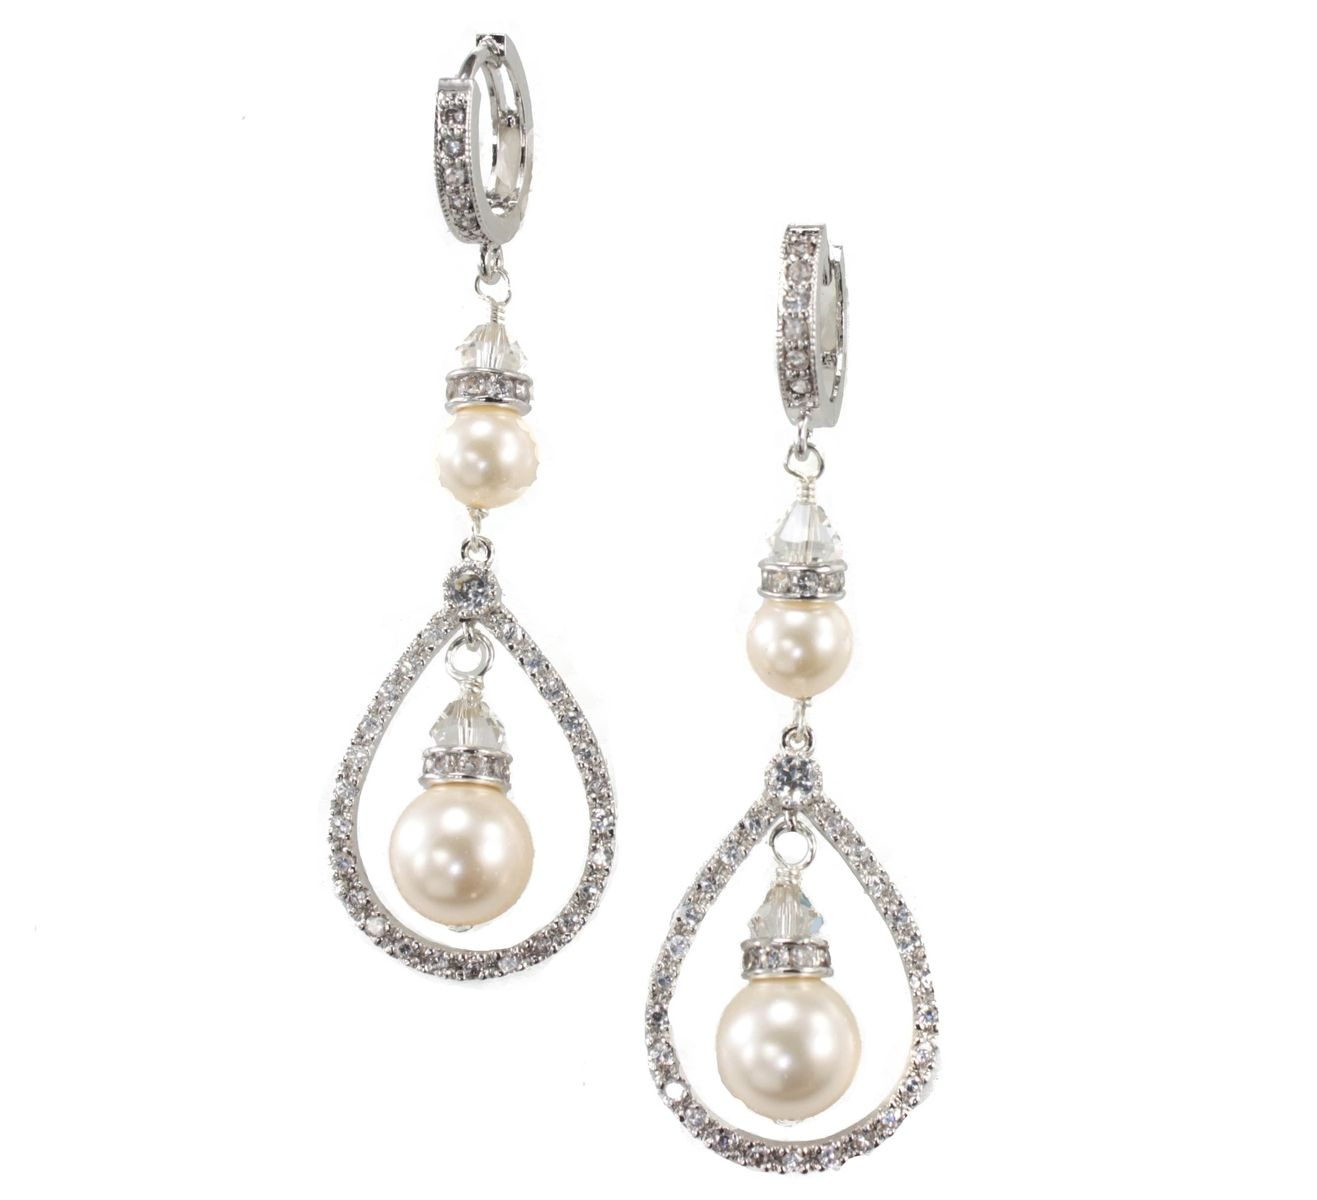 Buy a Hand Crafted Ivory Pearl Drop Earrings